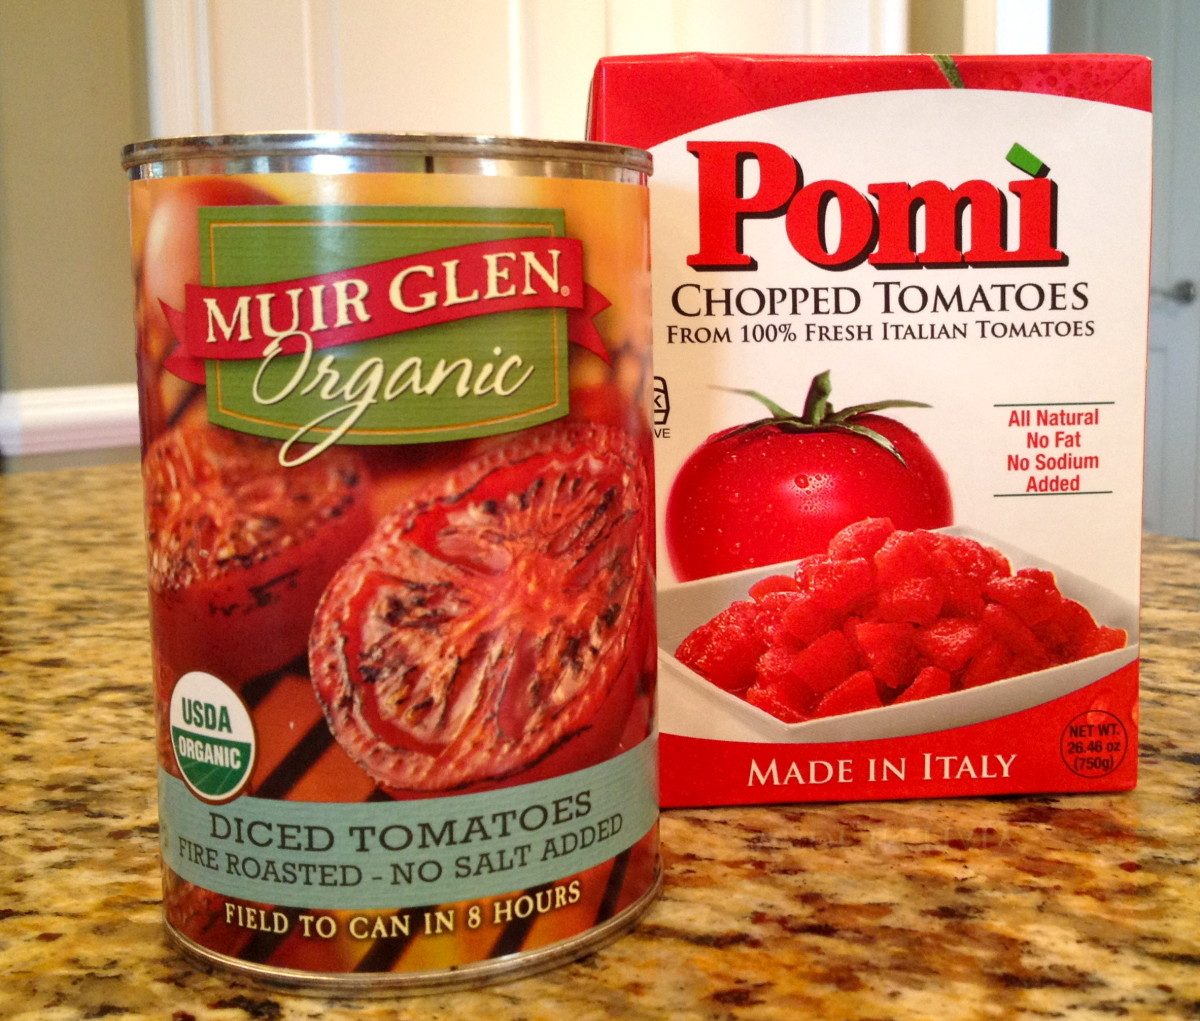 Choose no-salt-added chopped or diced tomatoes. Two good brands to try are Pomi and Muir Glen.